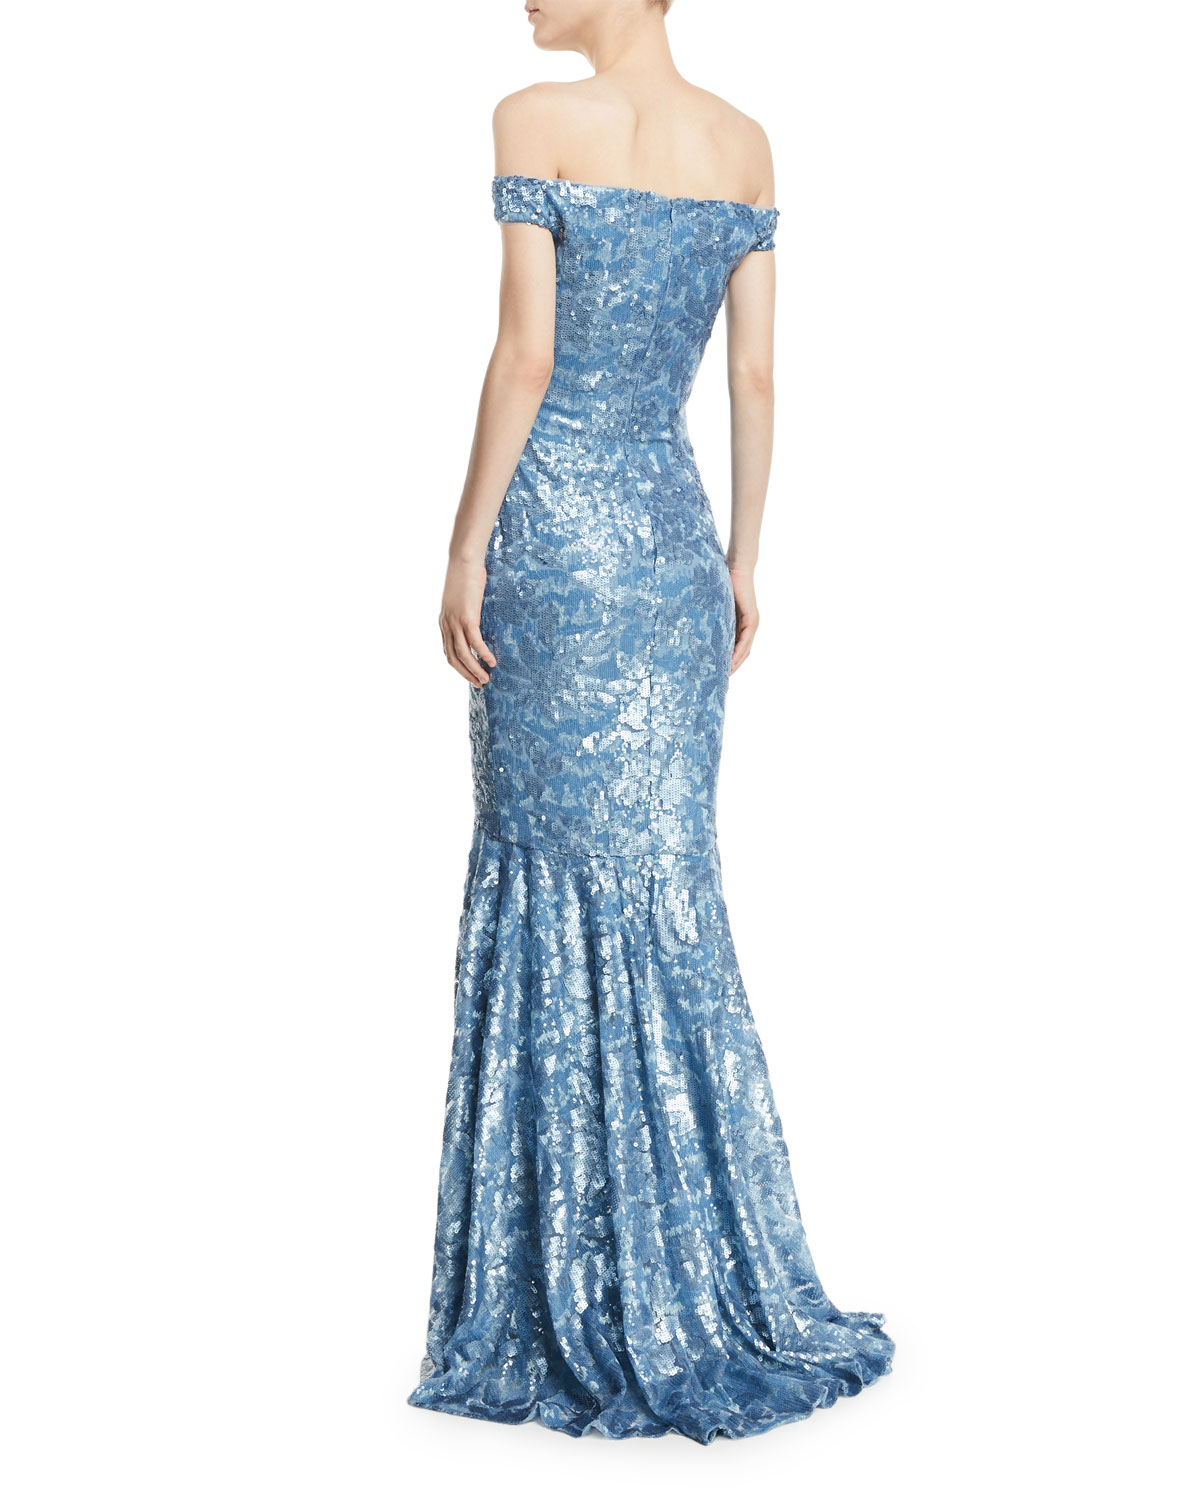 Theia Sequin Embellished Off-the-Shoulder Gown   Neiman Marcus